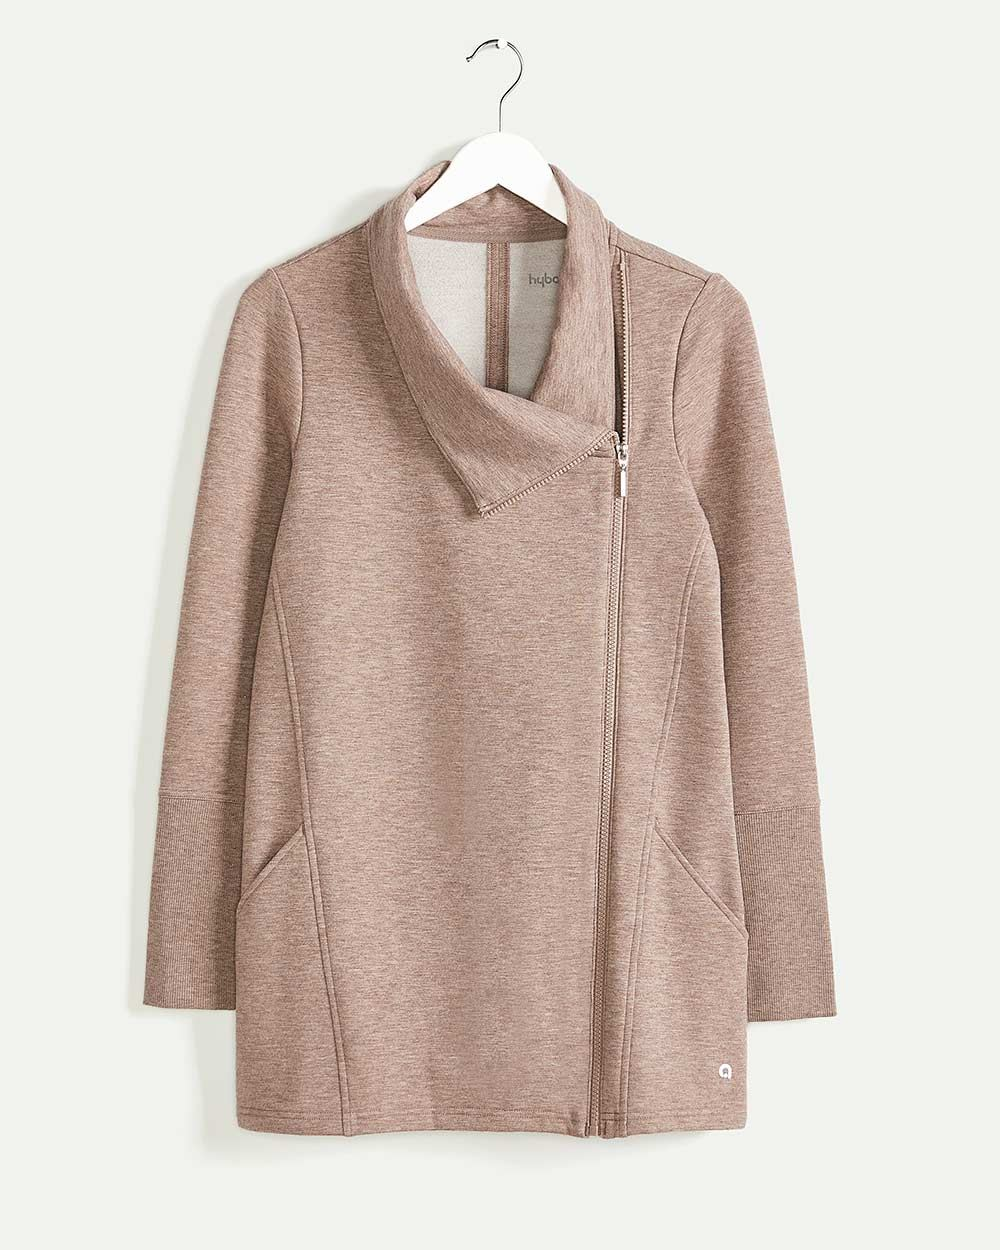 Long Sleeve Asymmetrical Jacket Hyba